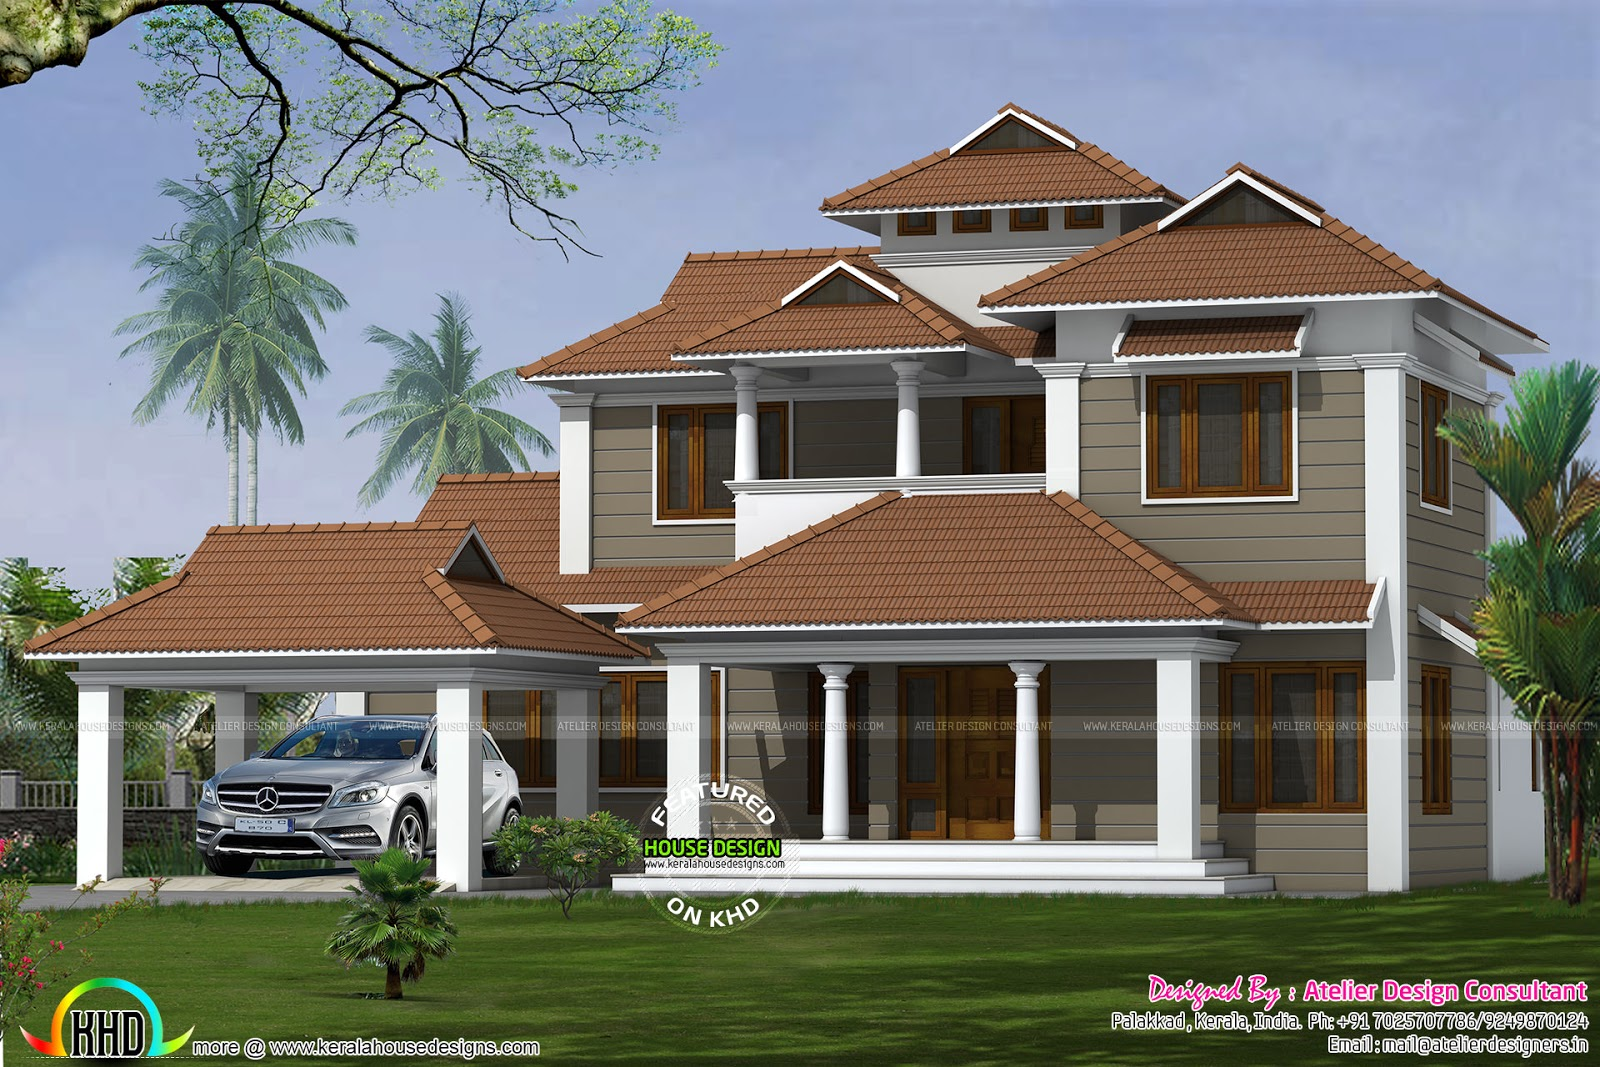 Architecture Design Kerala Model 5 bedroom traditional model sloping roof home | kerala home design